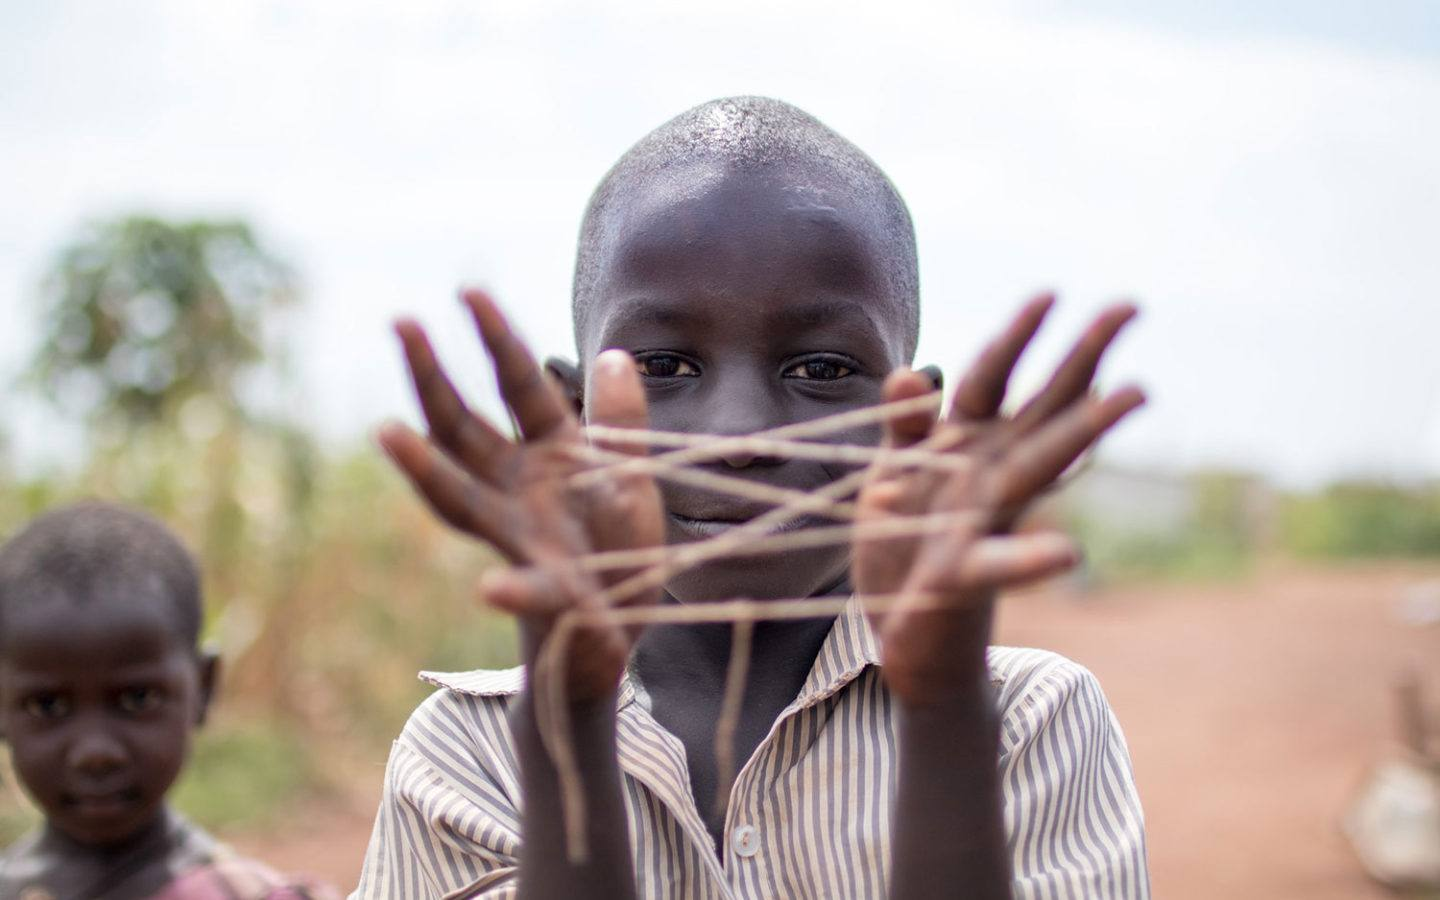 a young boy in Kenya showing a web of string stretched out between his hands